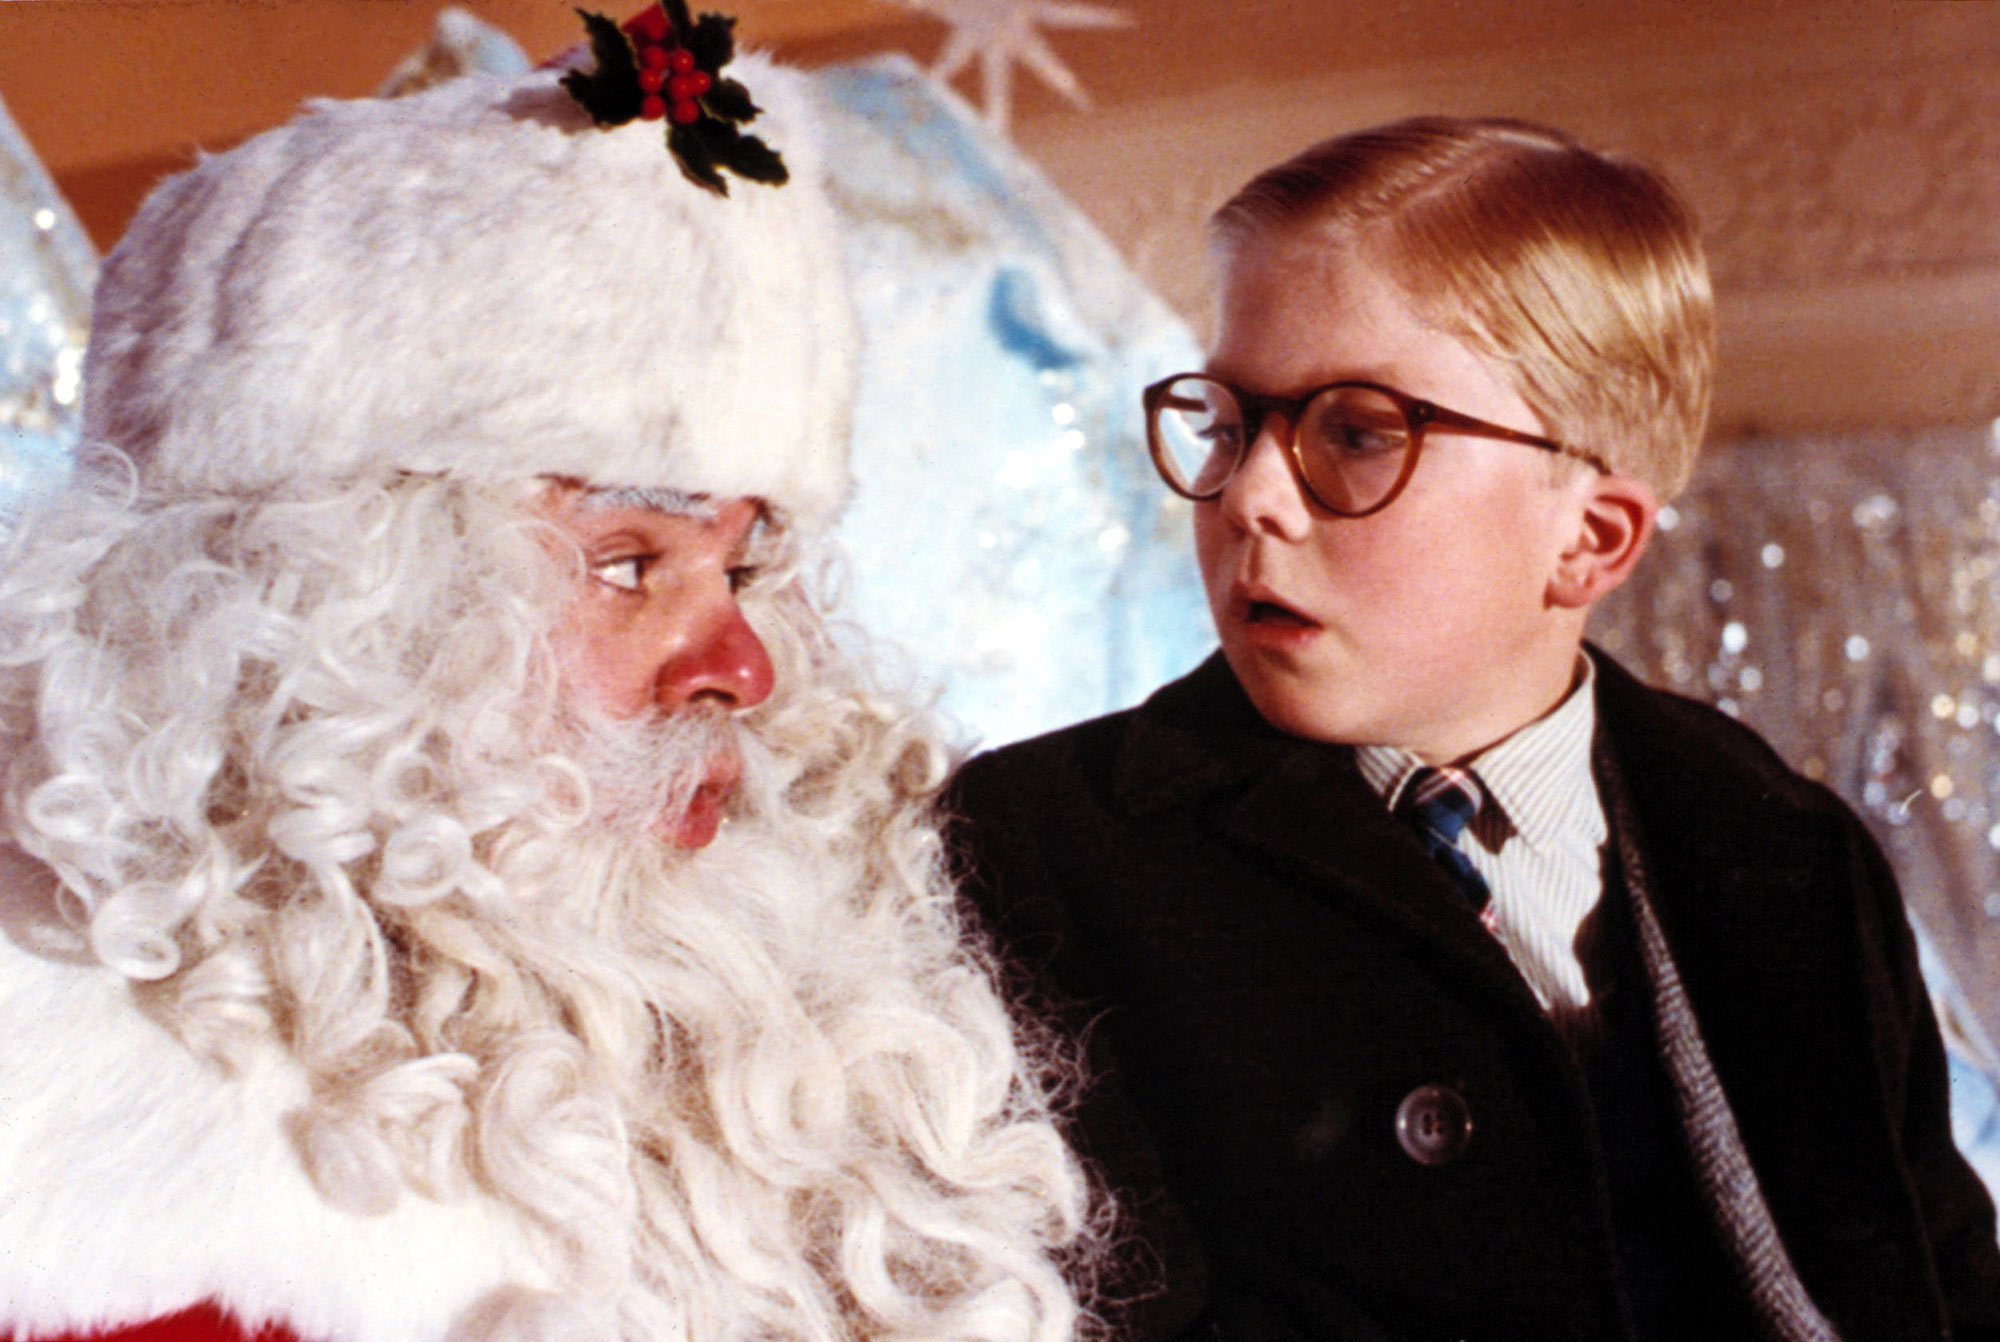 30 Surprising Facts About Your Favorite Christmas Movies